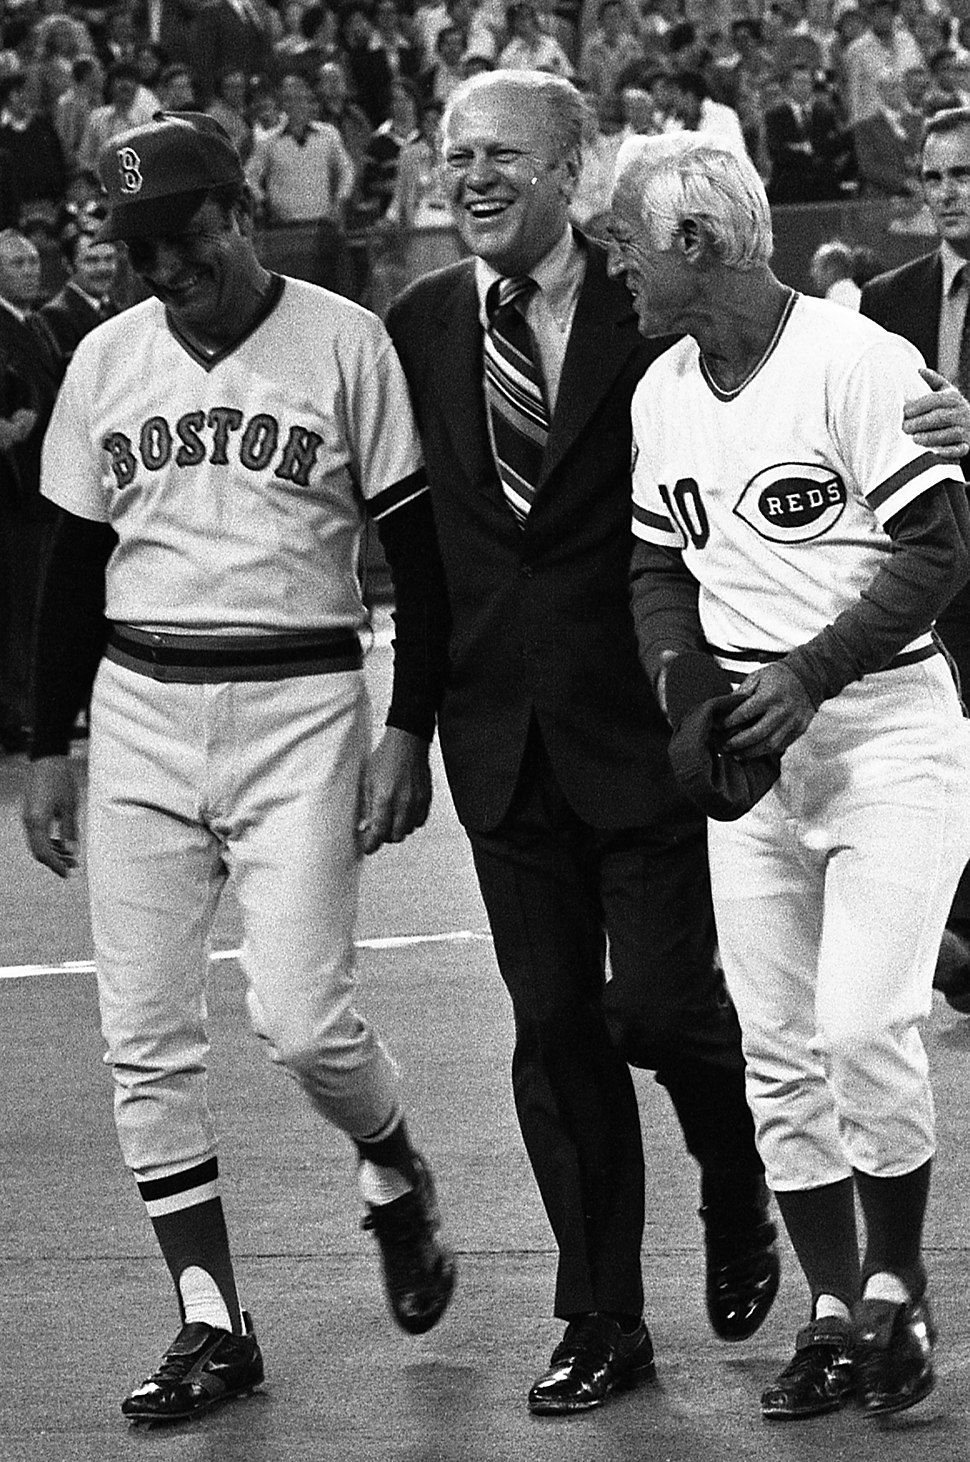 Darrell Johnson Gerald Ford and Sparky Anderson in 1976 (cropped)